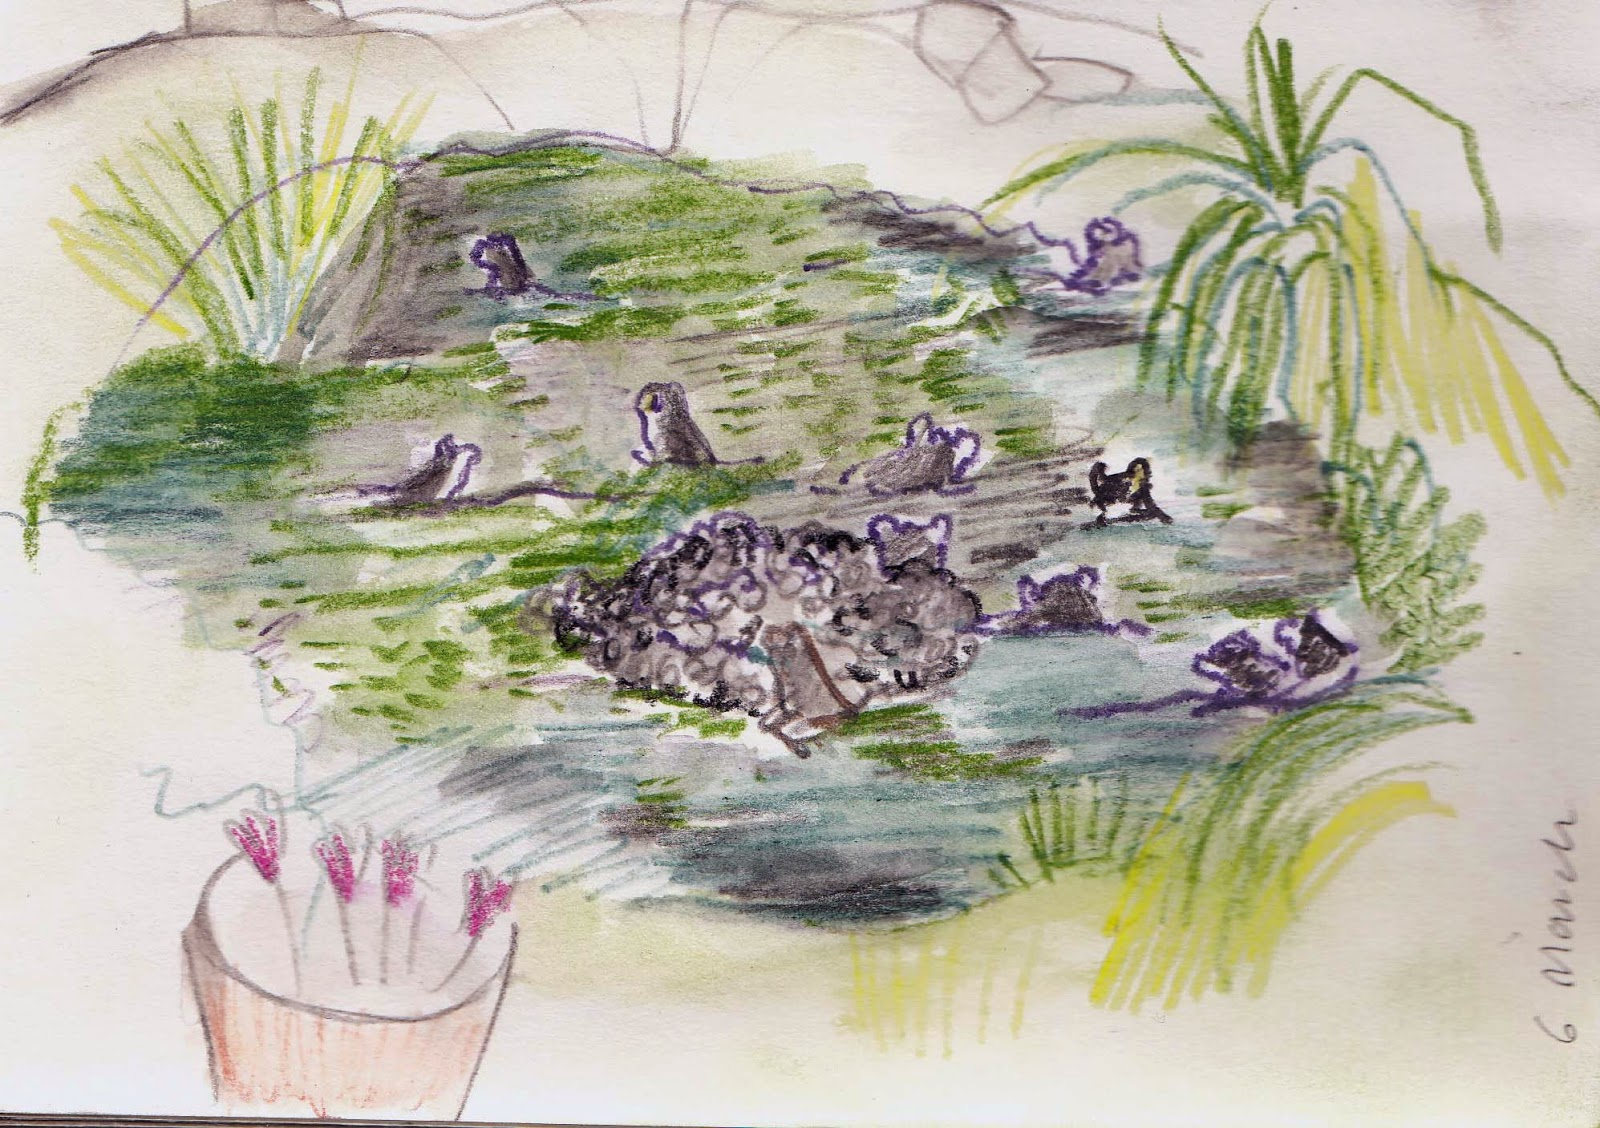 London Gardening Under Difficulty Sketch Of The Frogs In